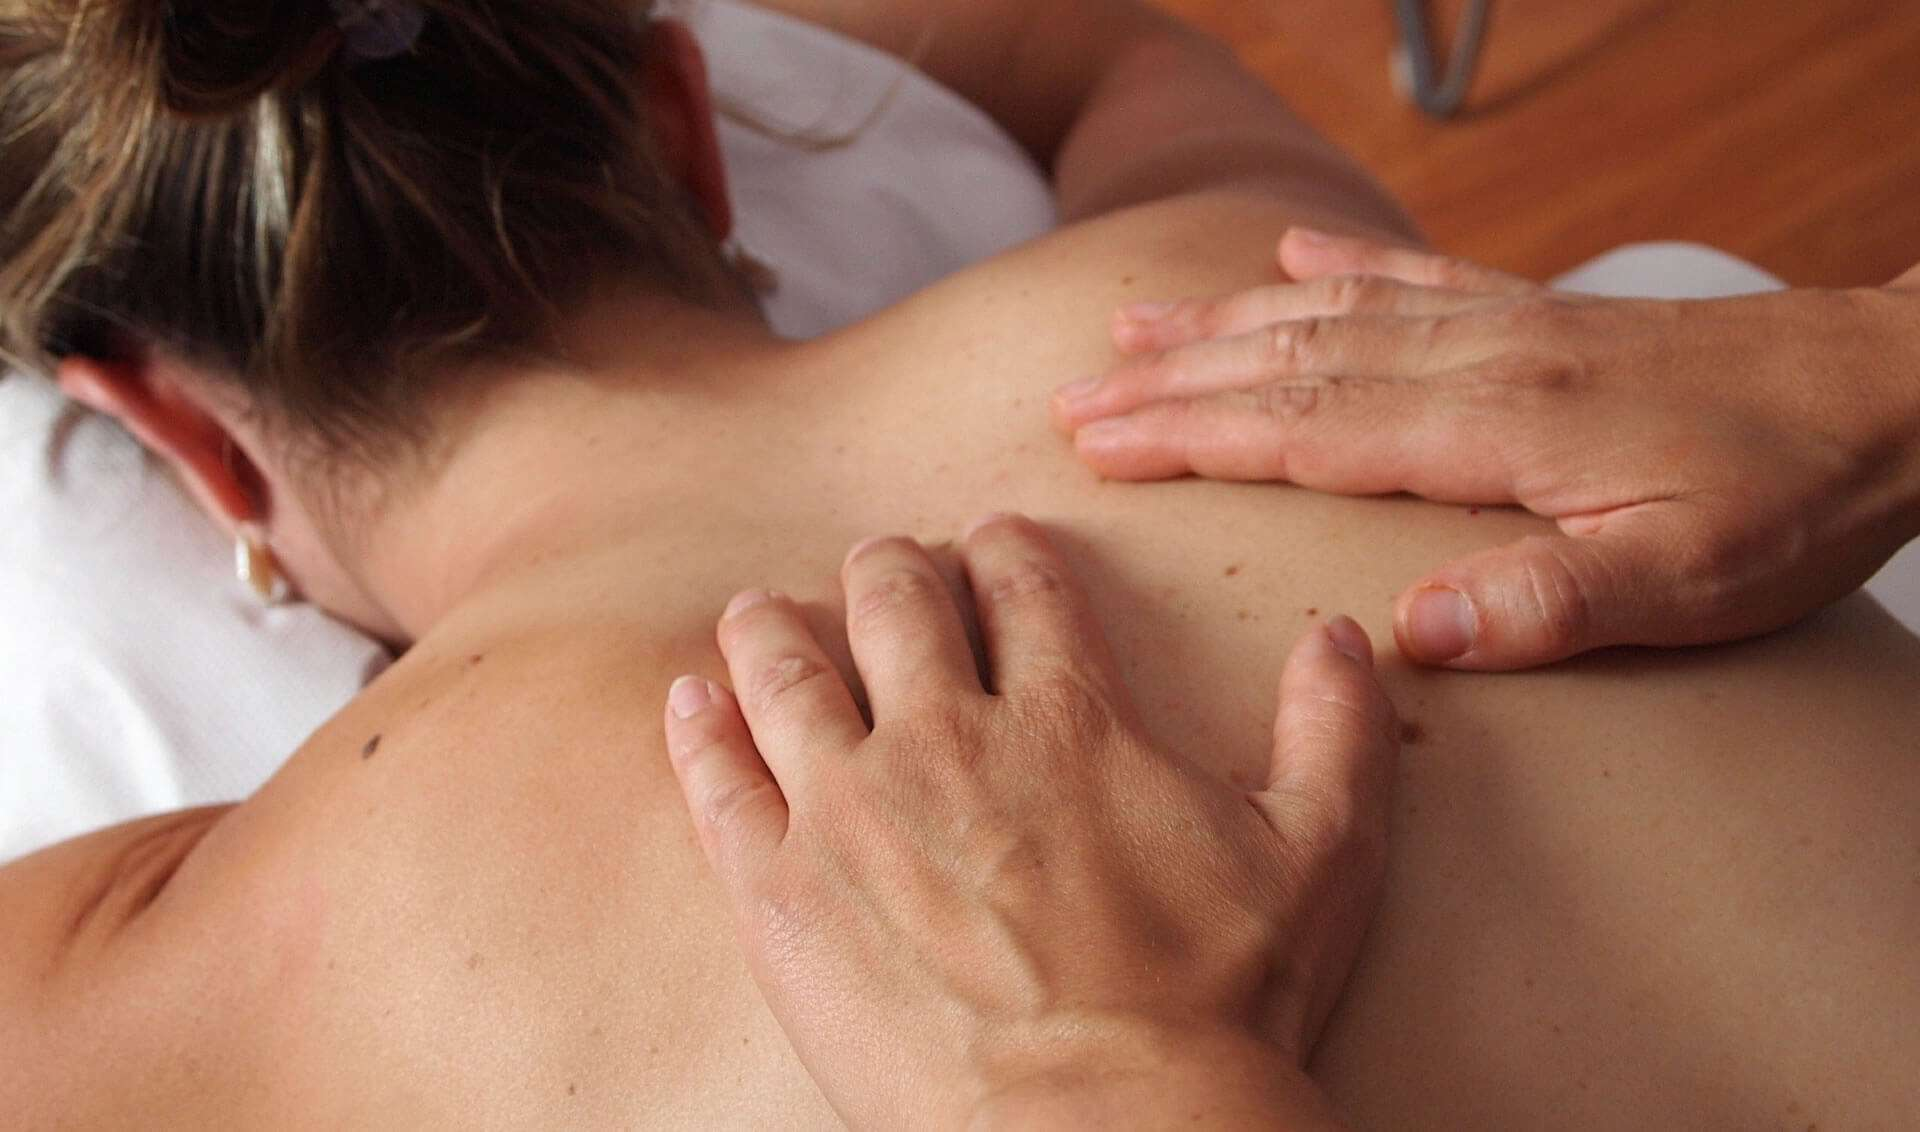 Massage therapy near me, Massage therapy in woodbridge, Massage therapy in Vaughan, Massage, Massage therapy